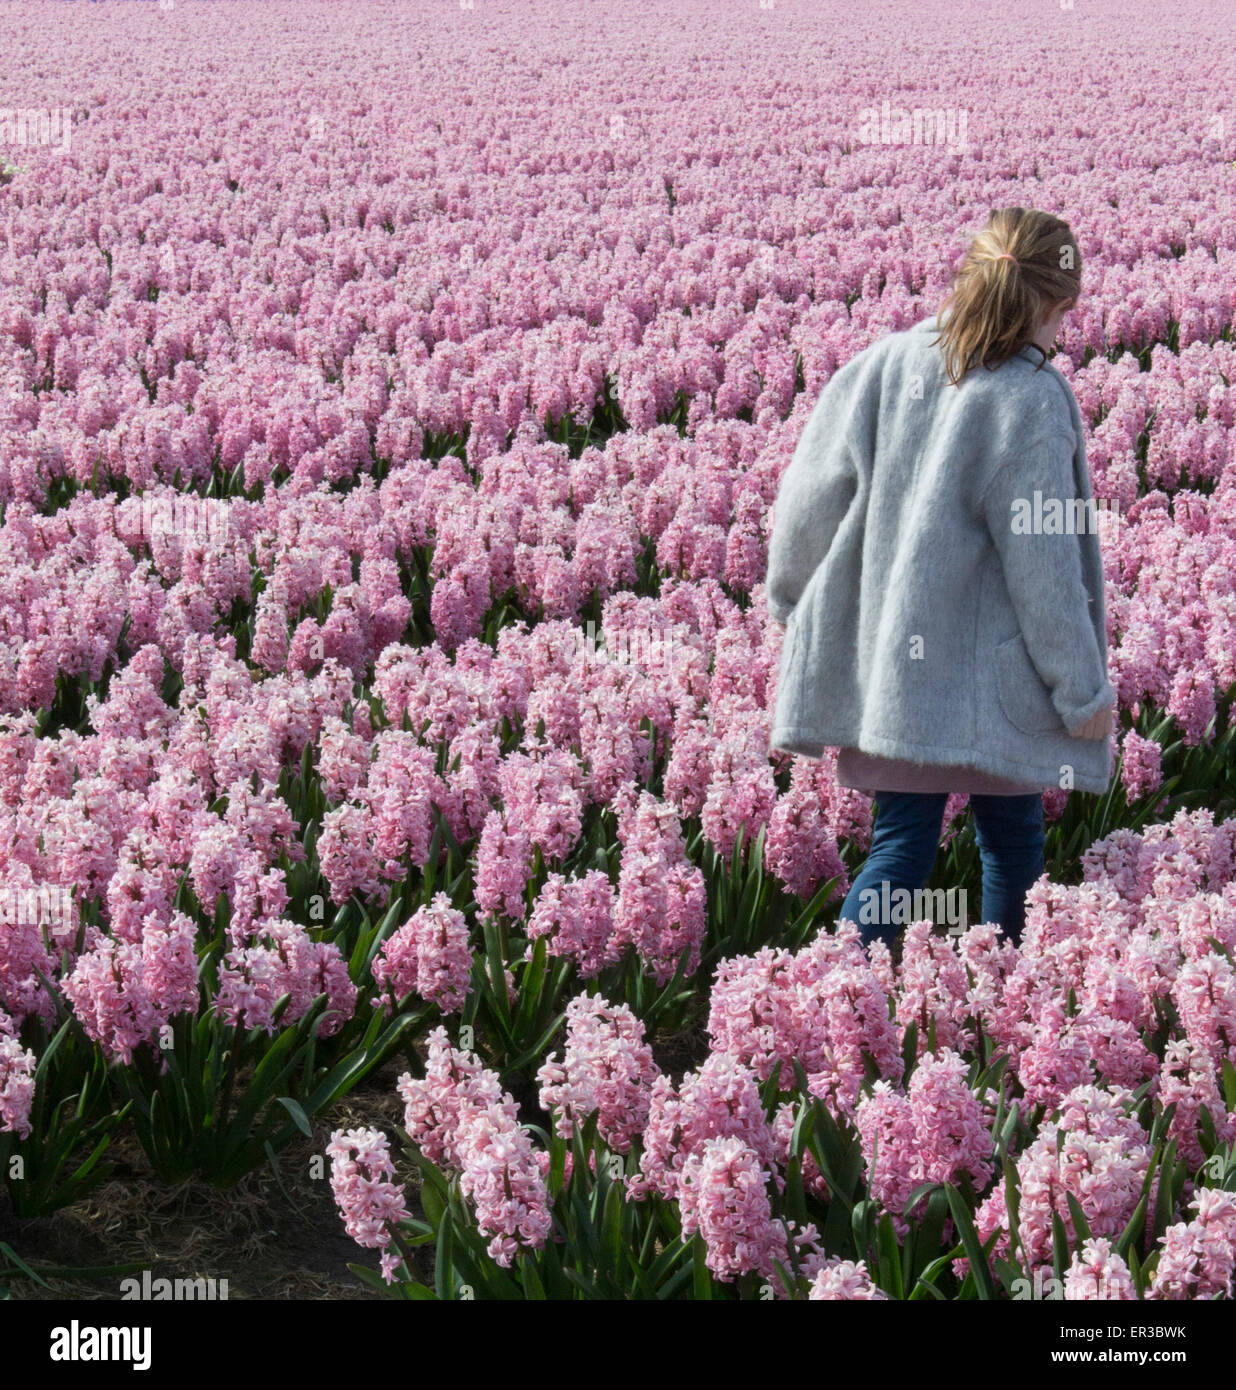 Girl Walking Through A Field Of Pink Hyacinth Flowers Stock Photo